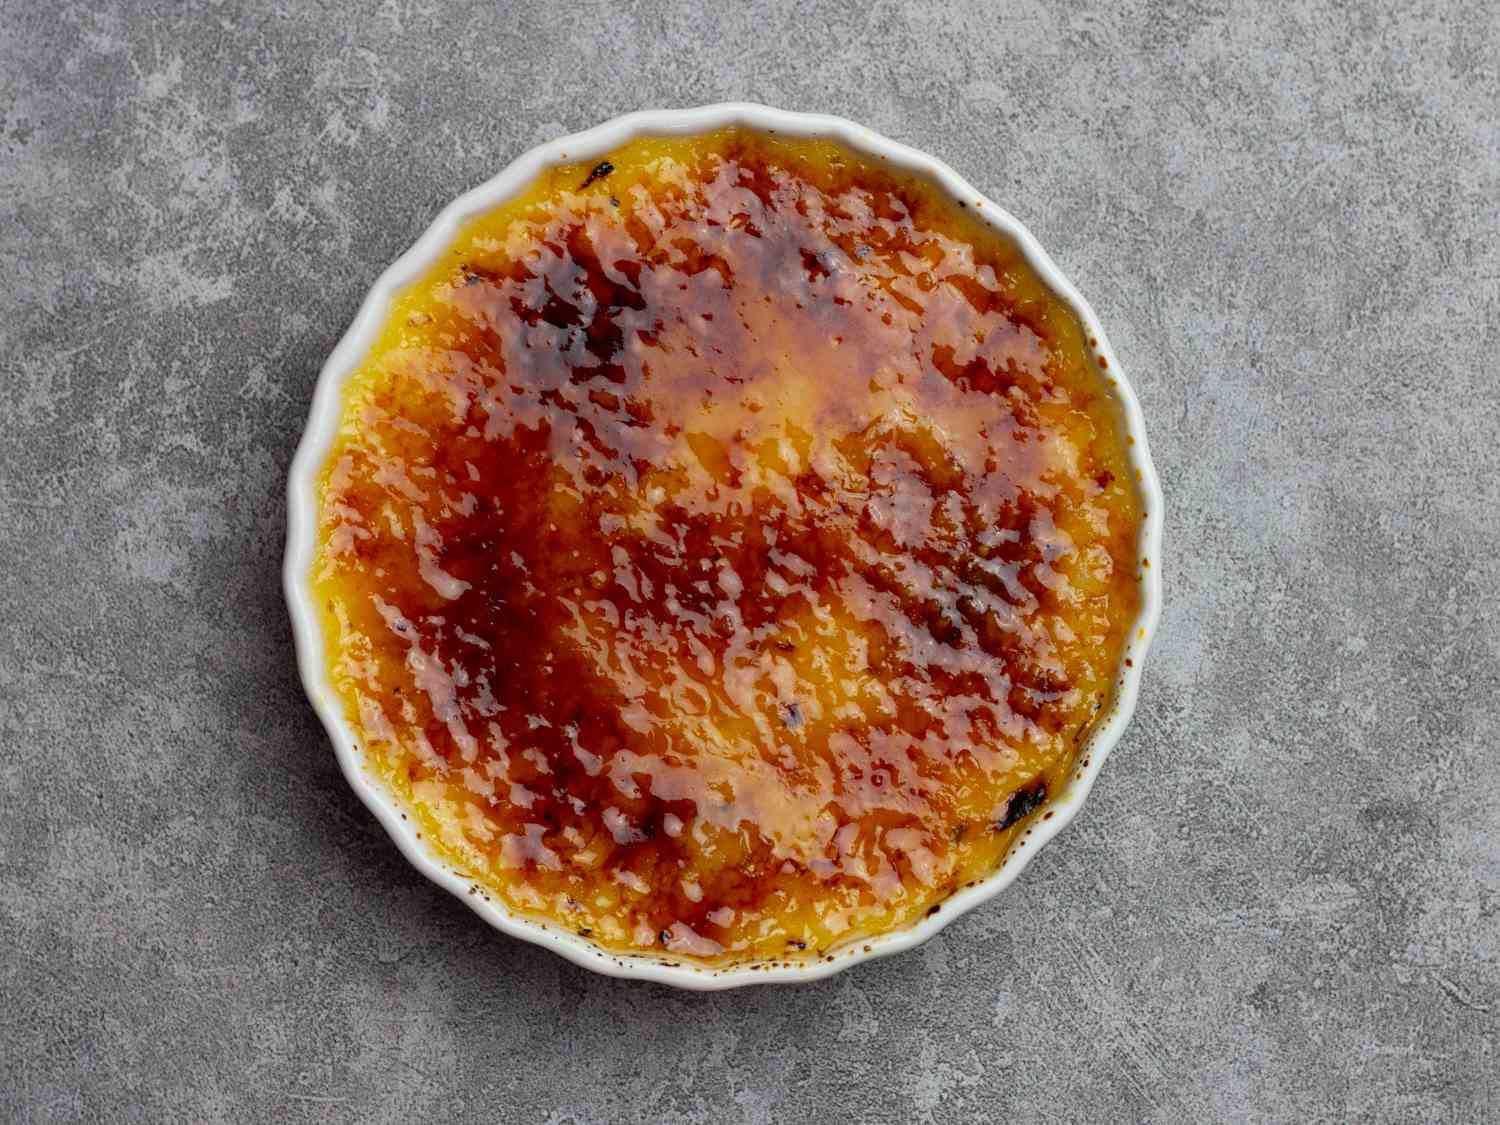 Torching a Creme Brulee